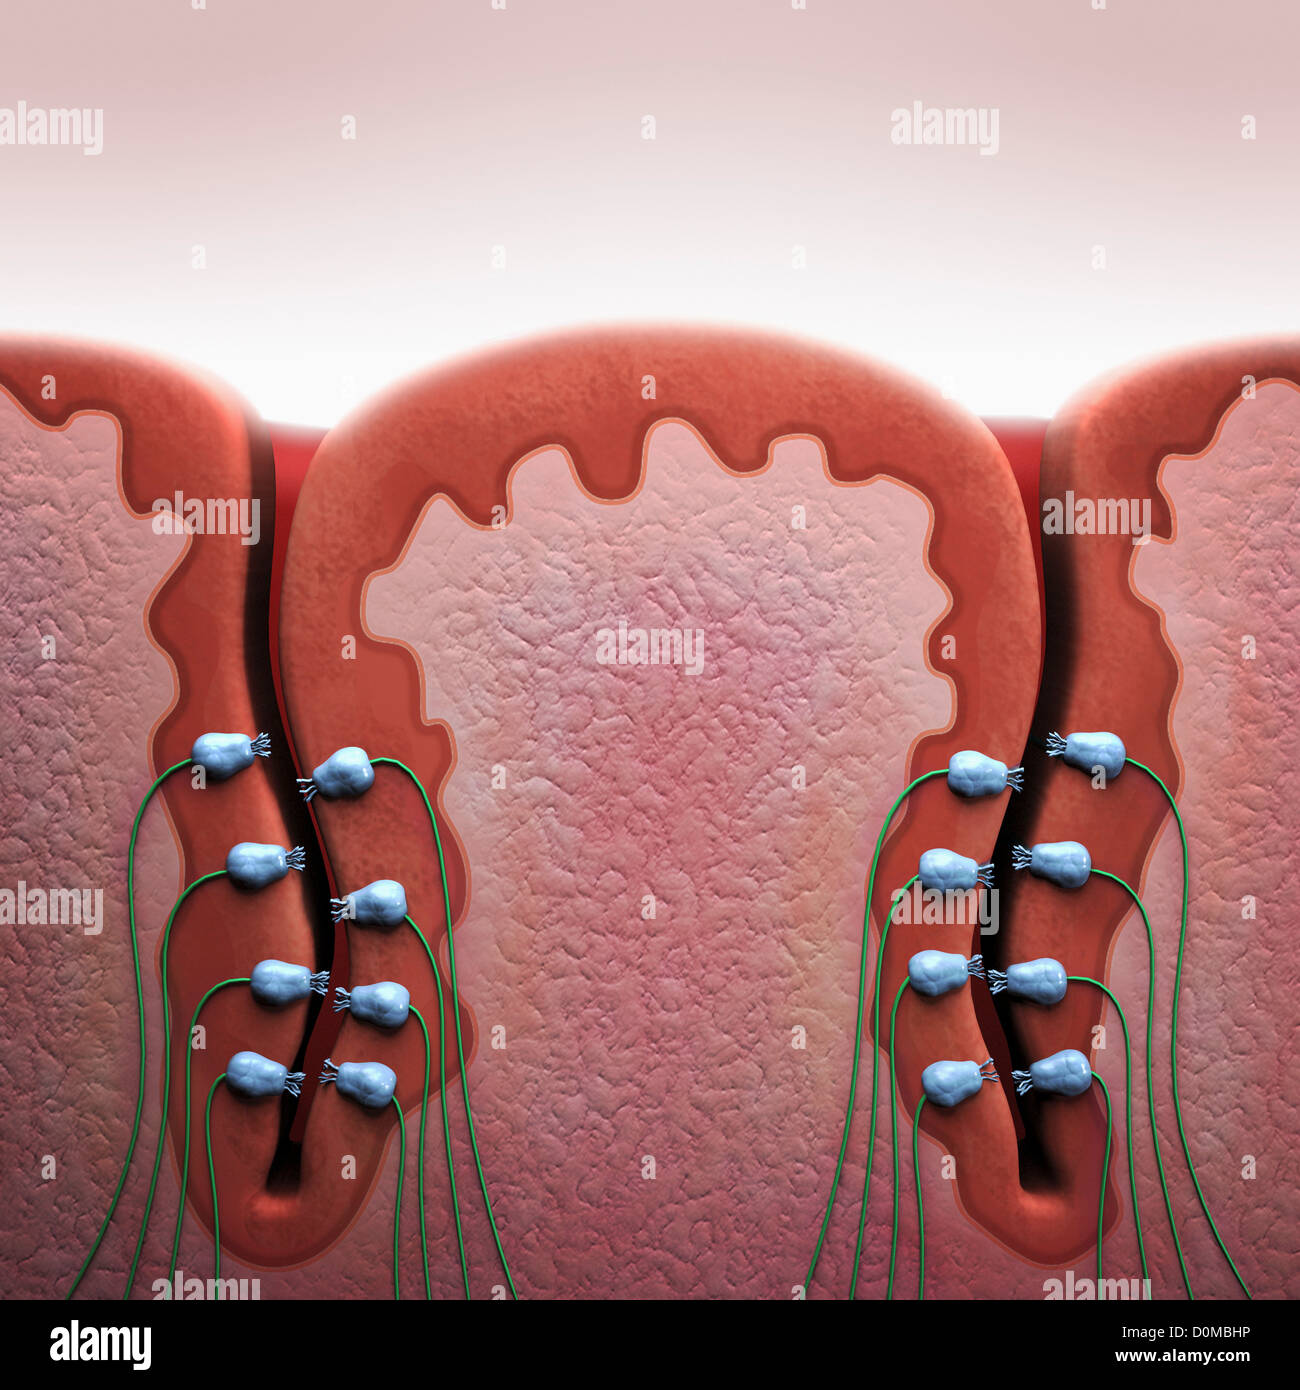 A Cross Section Diagram Of A Taste Bud On A Human Tongue Stock Photo